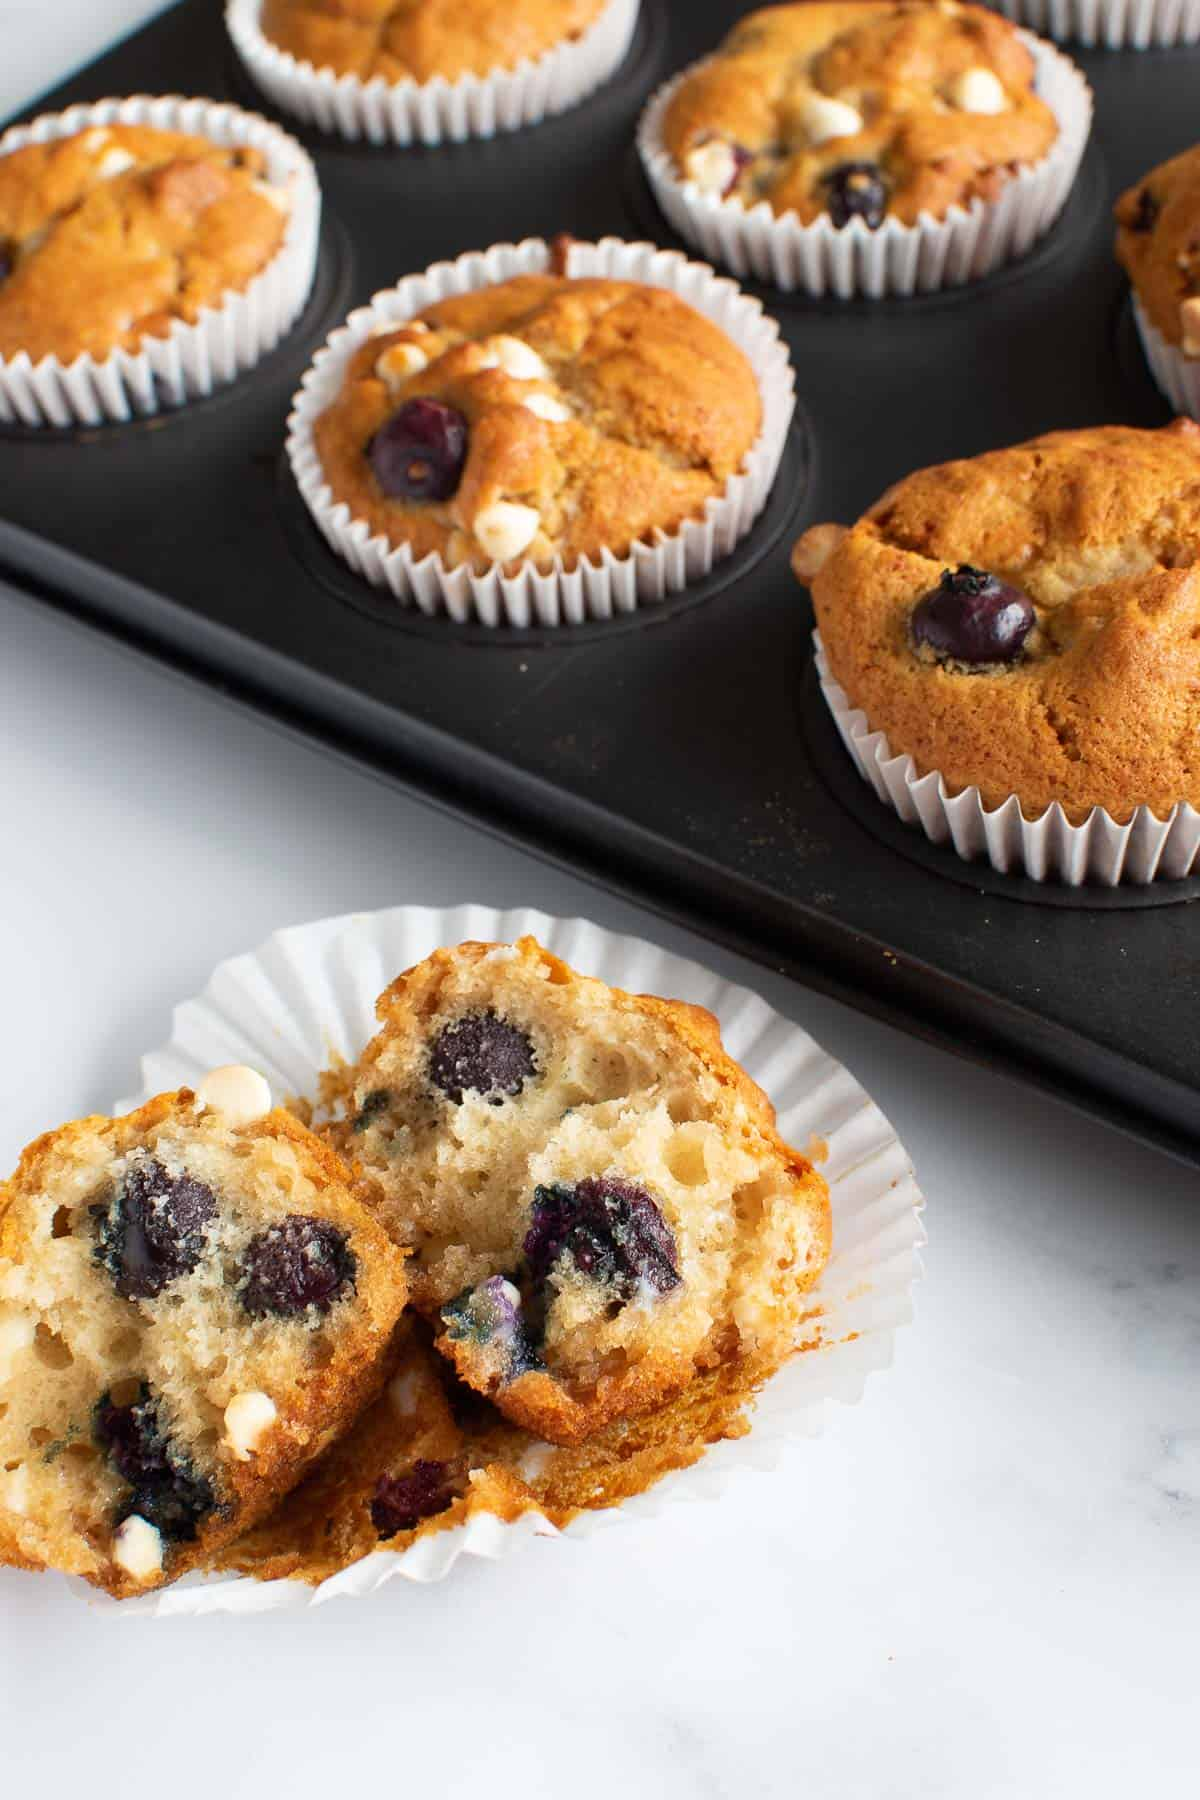 A halved blueberry and white chocolate muffin, with more muffins in the back.